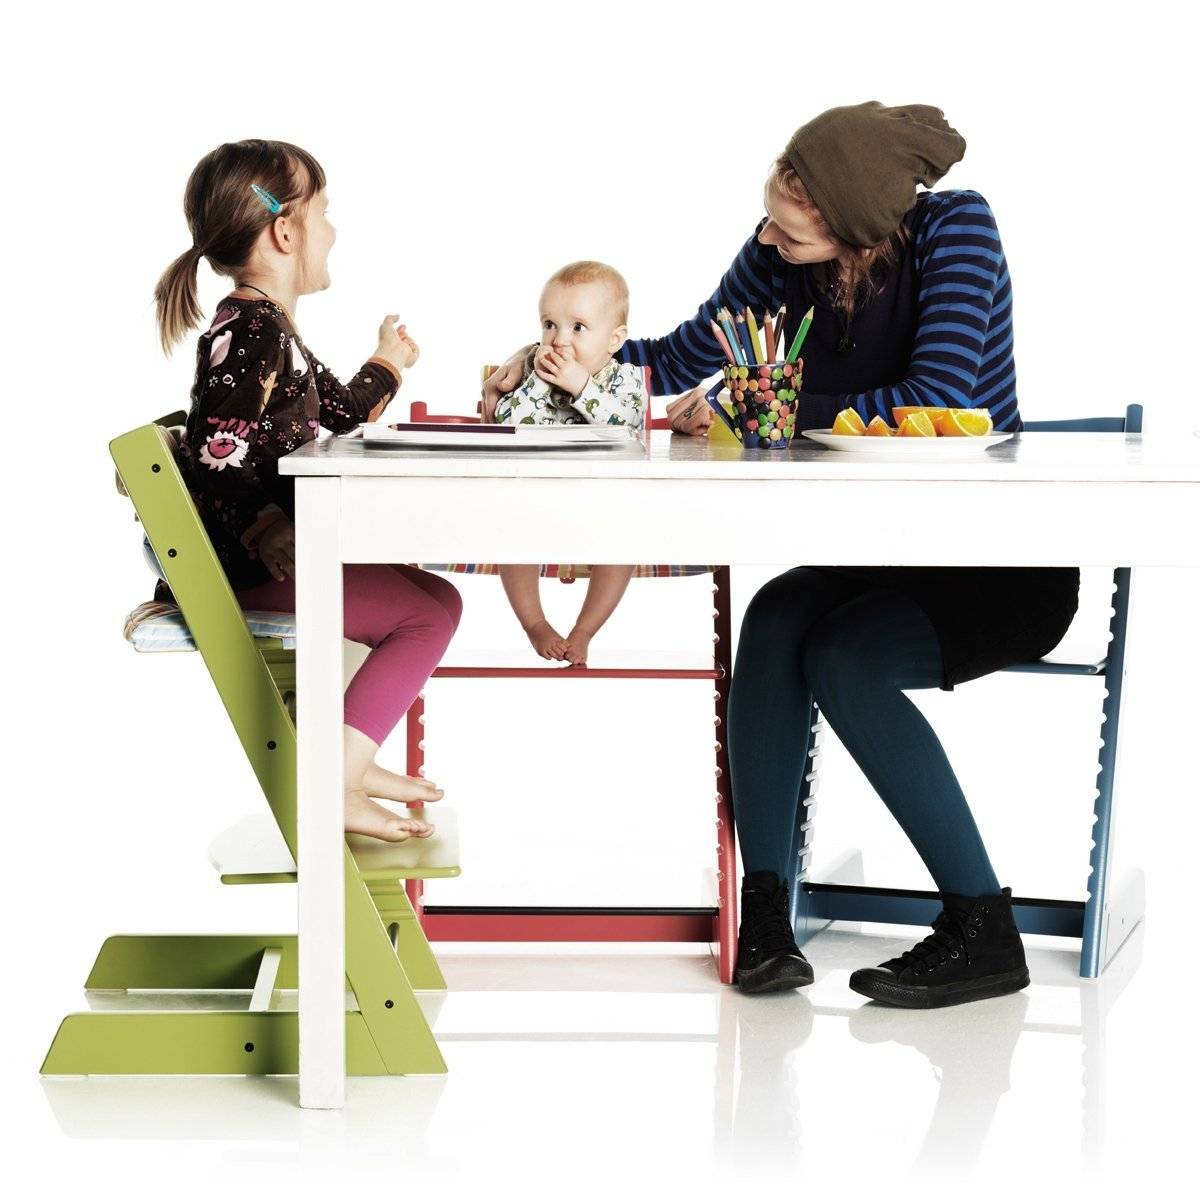 stokke tripp trapp high chair stokke tripp trapp high chair. Black Bedroom Furniture Sets. Home Design Ideas